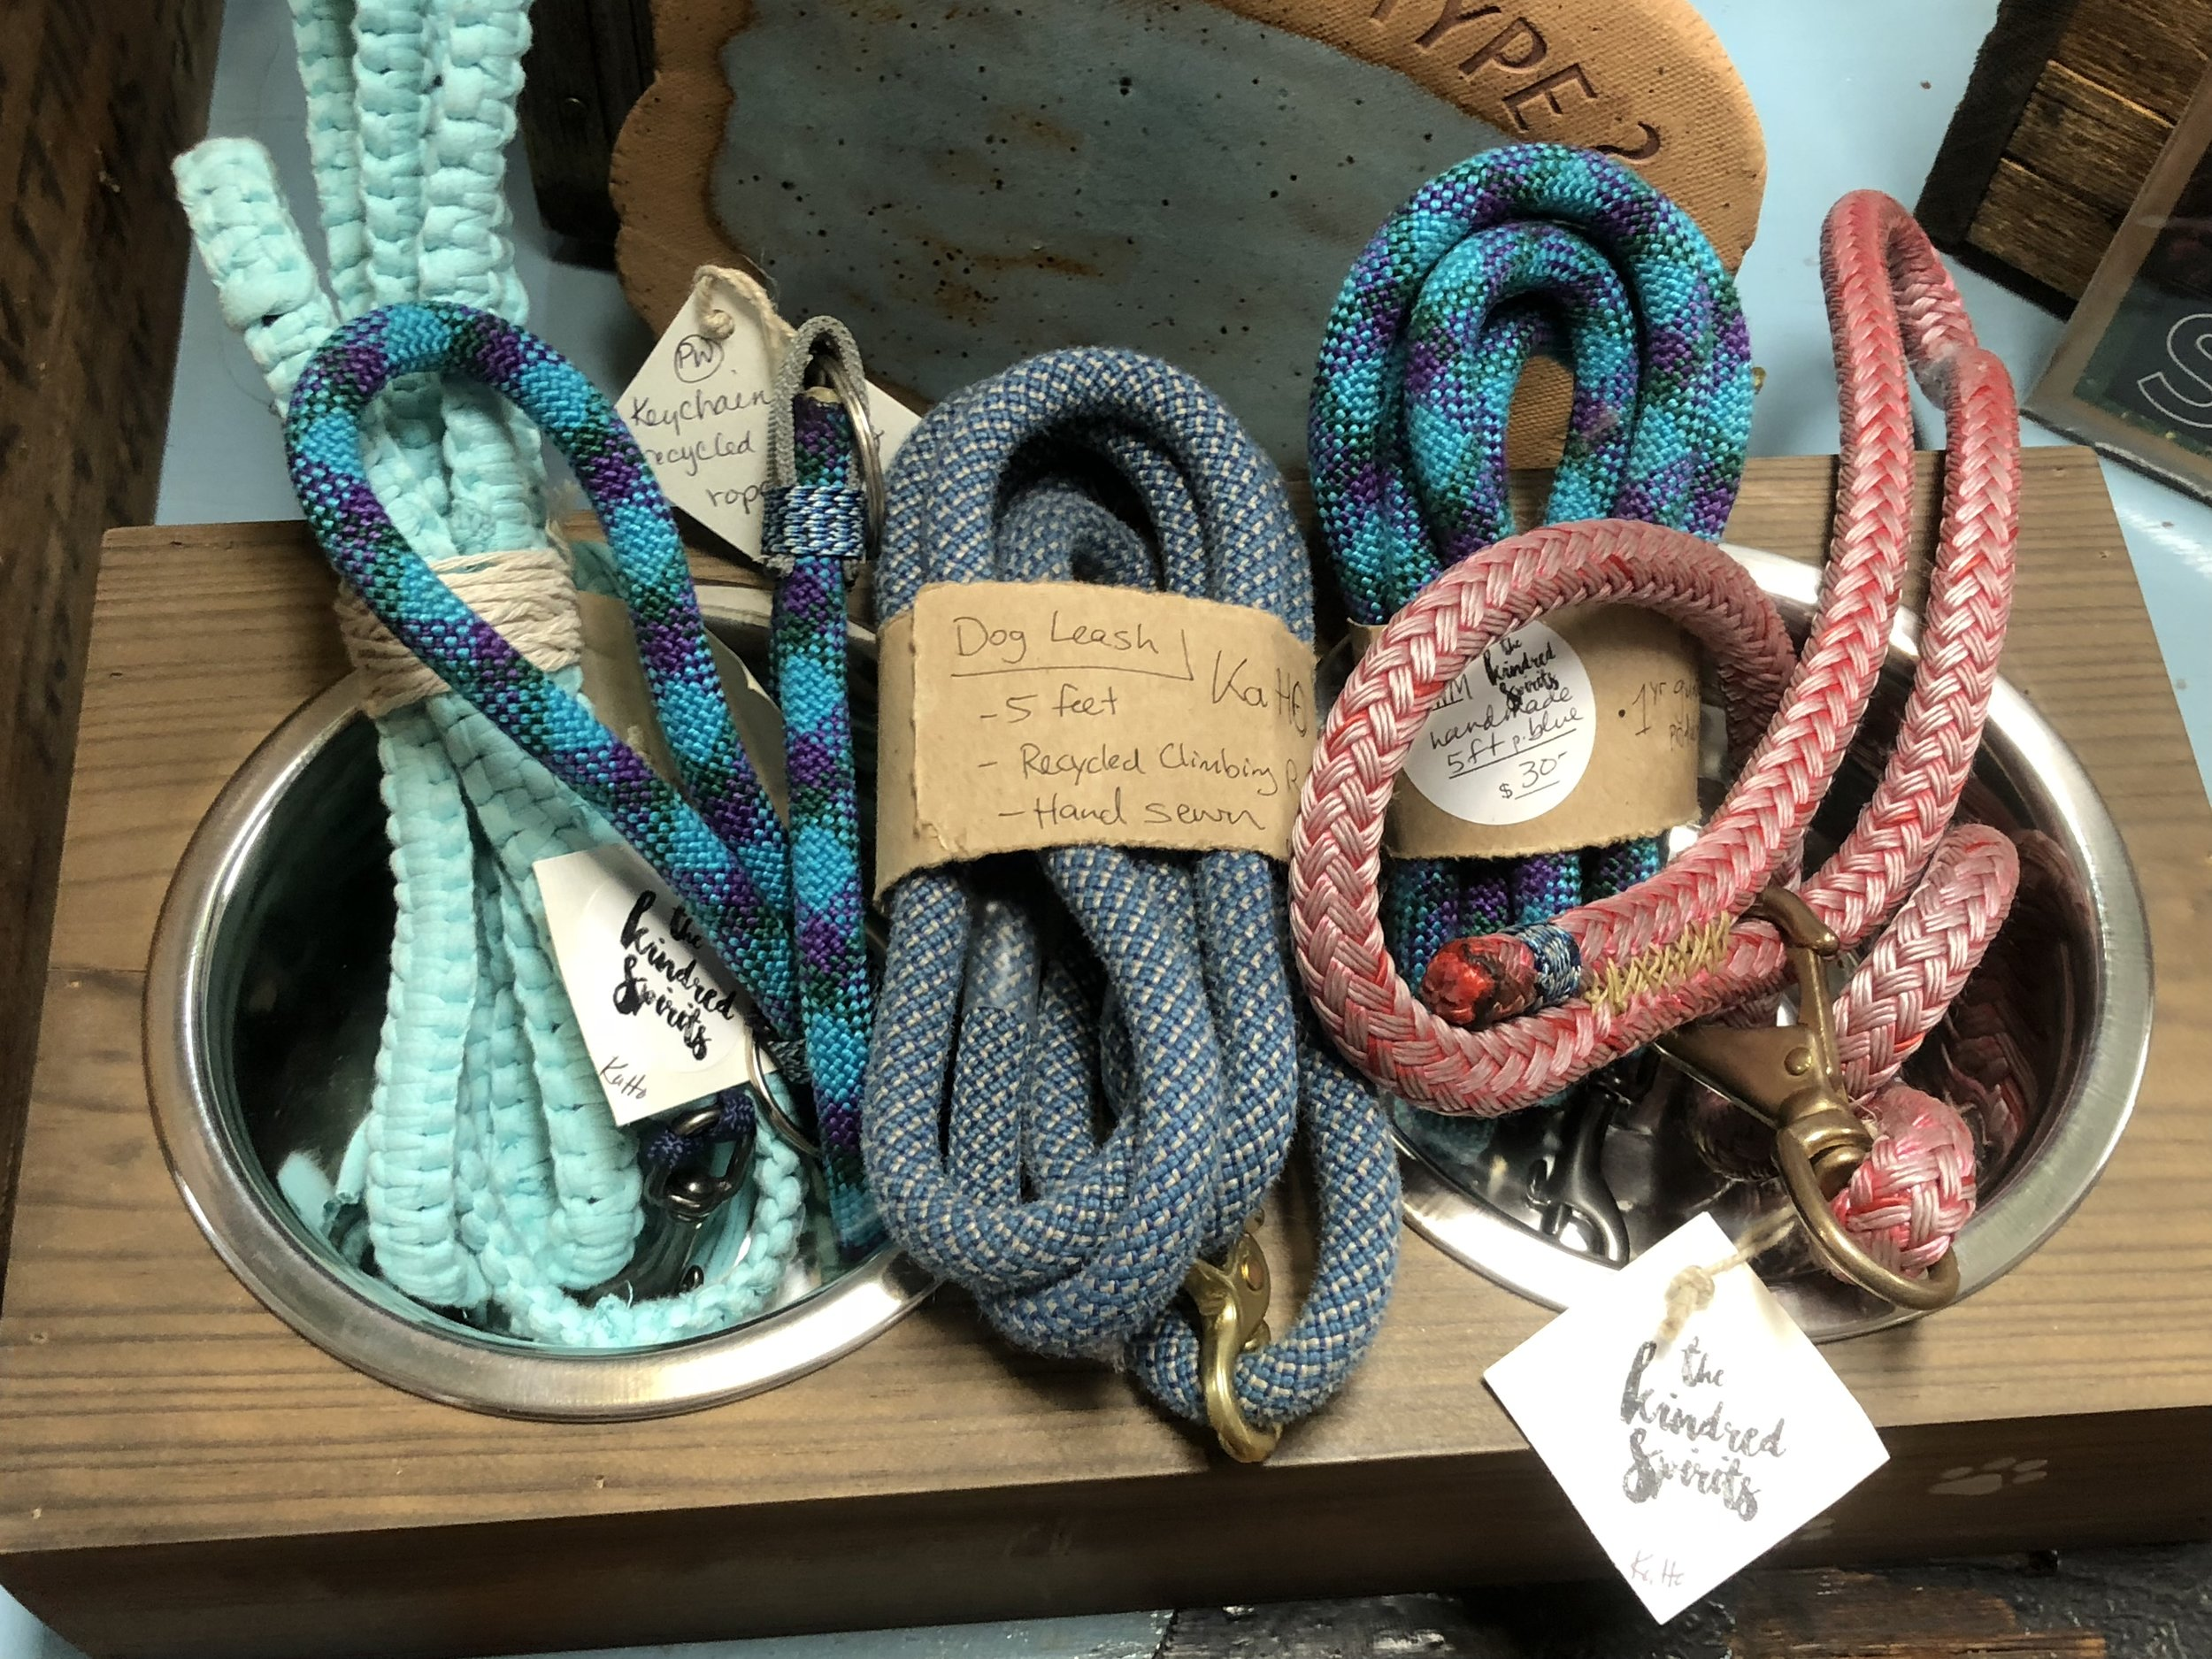 PHILLIP MACDONALD - KaHo - Kind and Helpful objectsDOG LEASHES FROM RETIRED CLIMBING ROPE